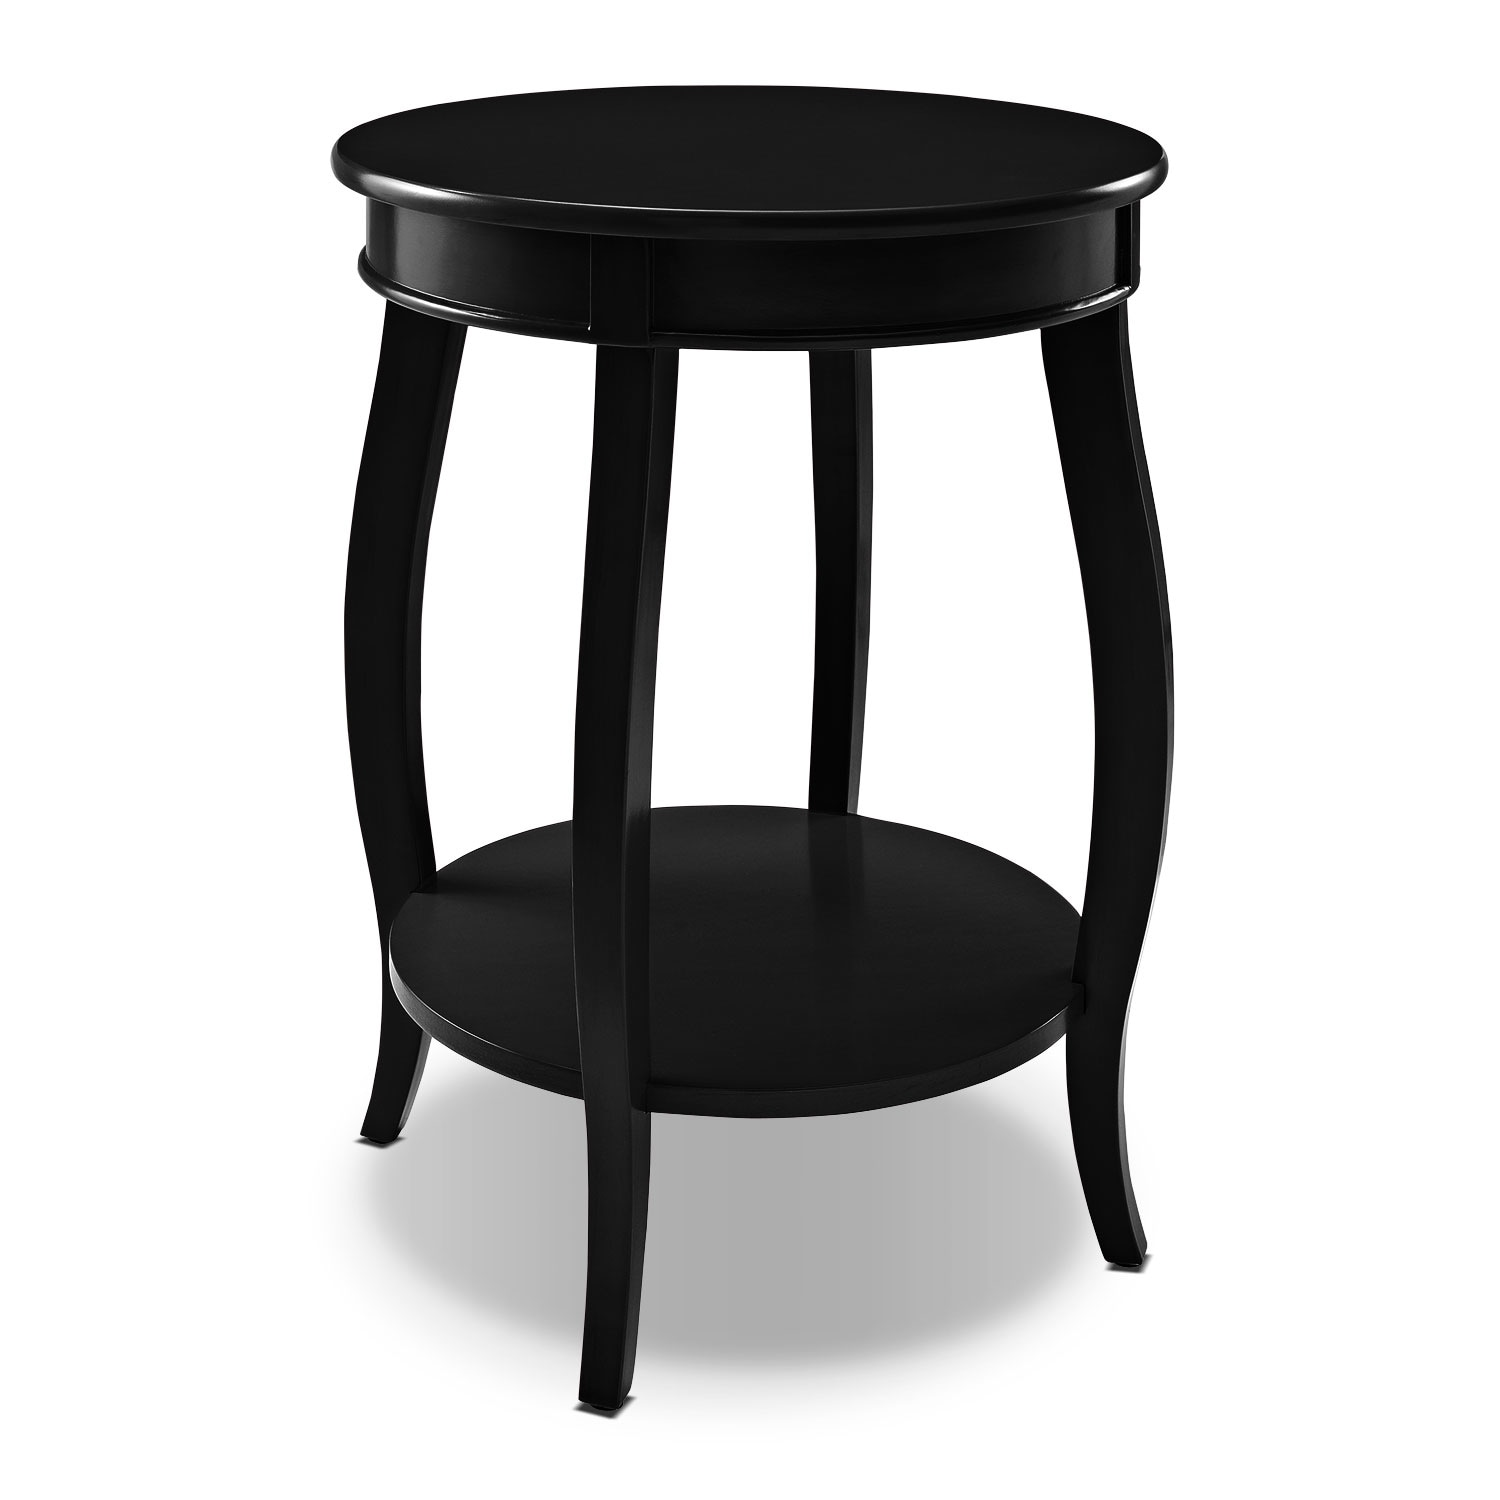 Sydney Accent Table - Black